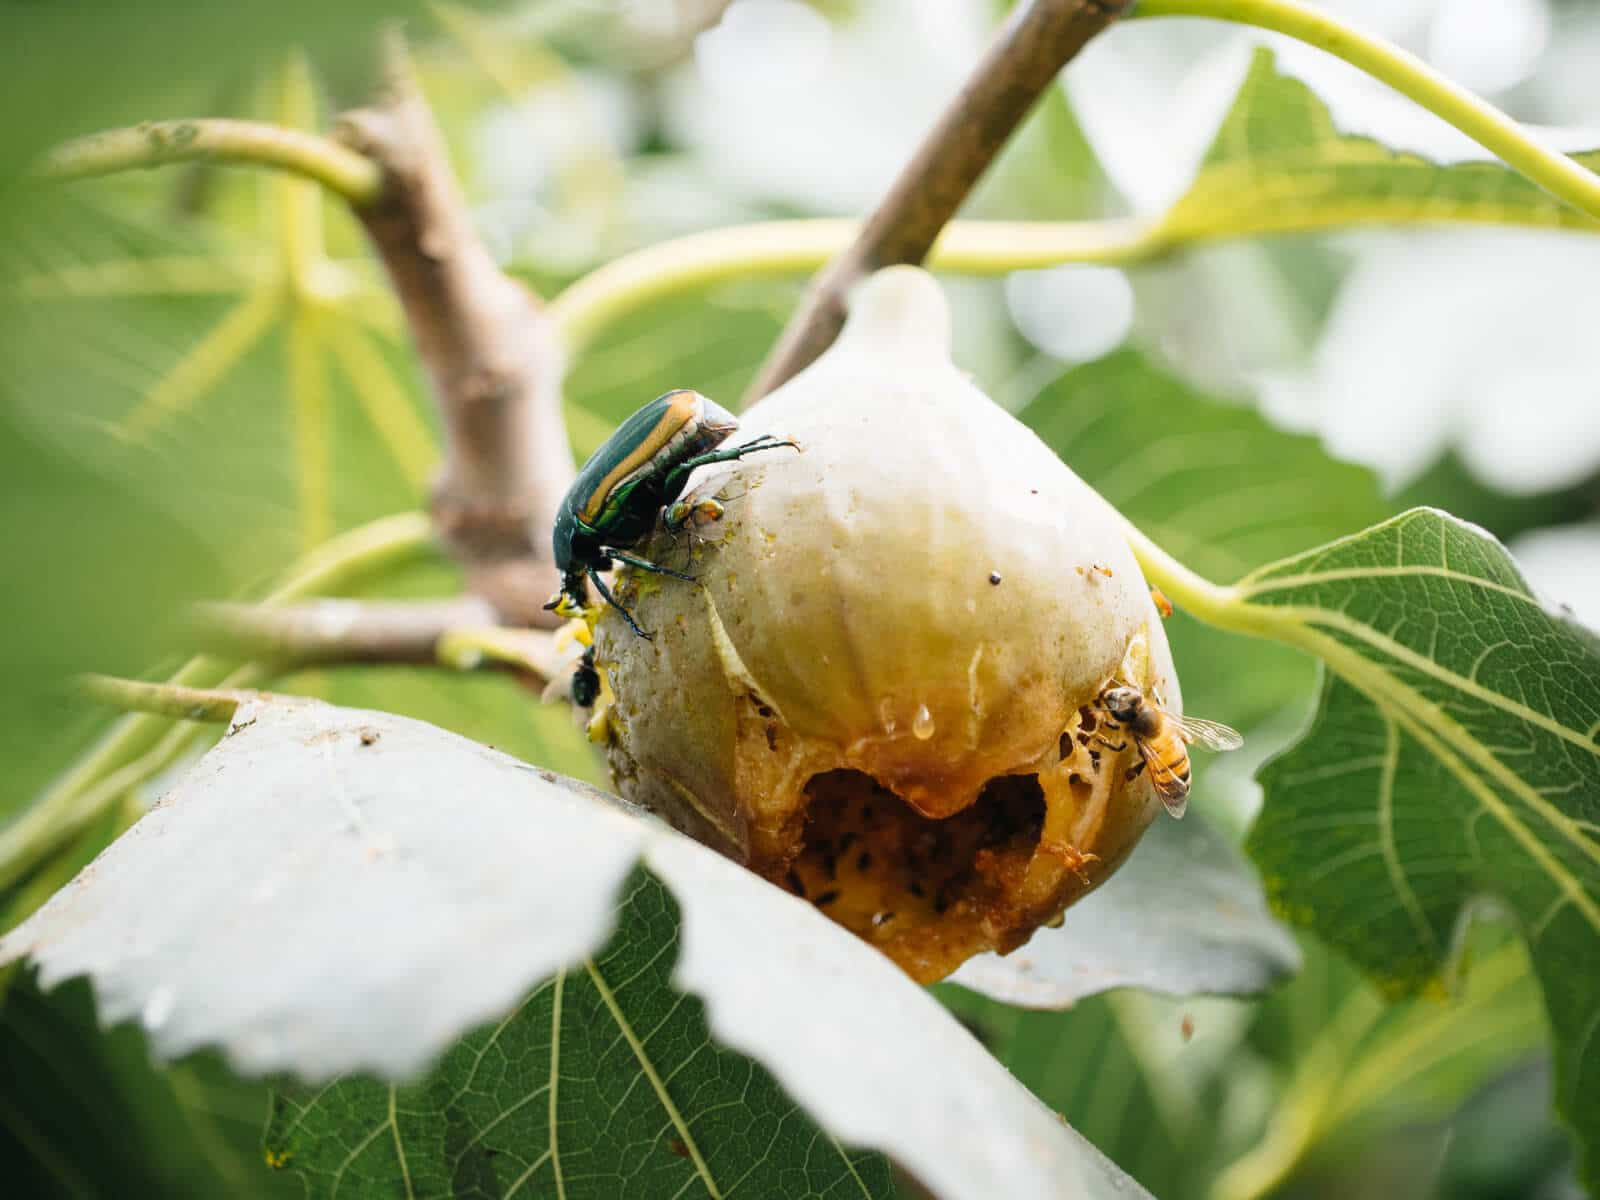 Fig beetle feeding on overripe fig